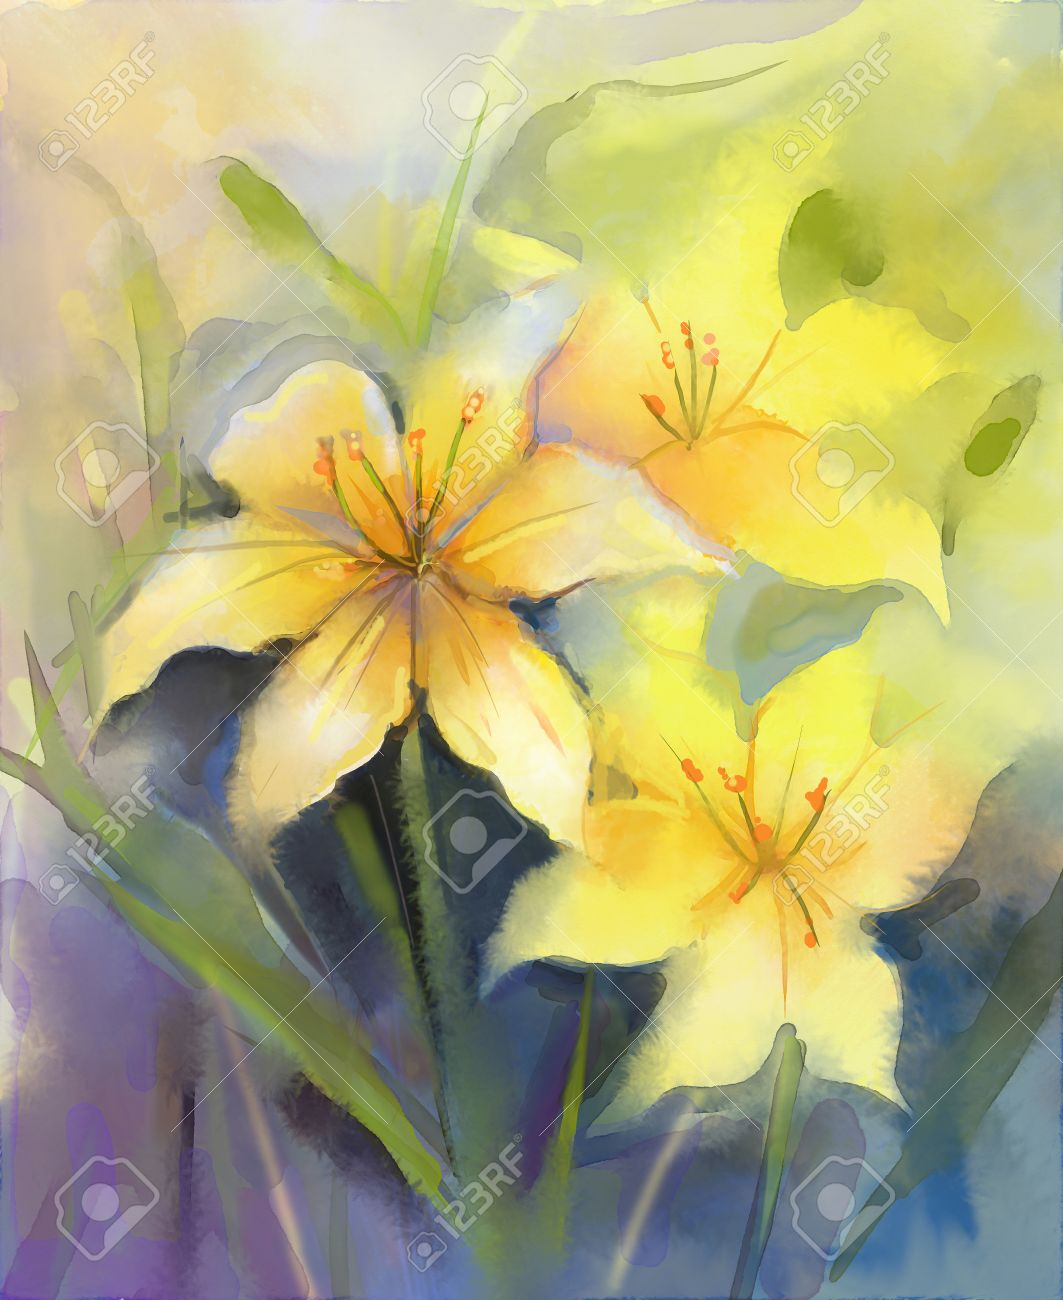 Painting Color three yellow lily flower.watercolor painting floral,in soft color